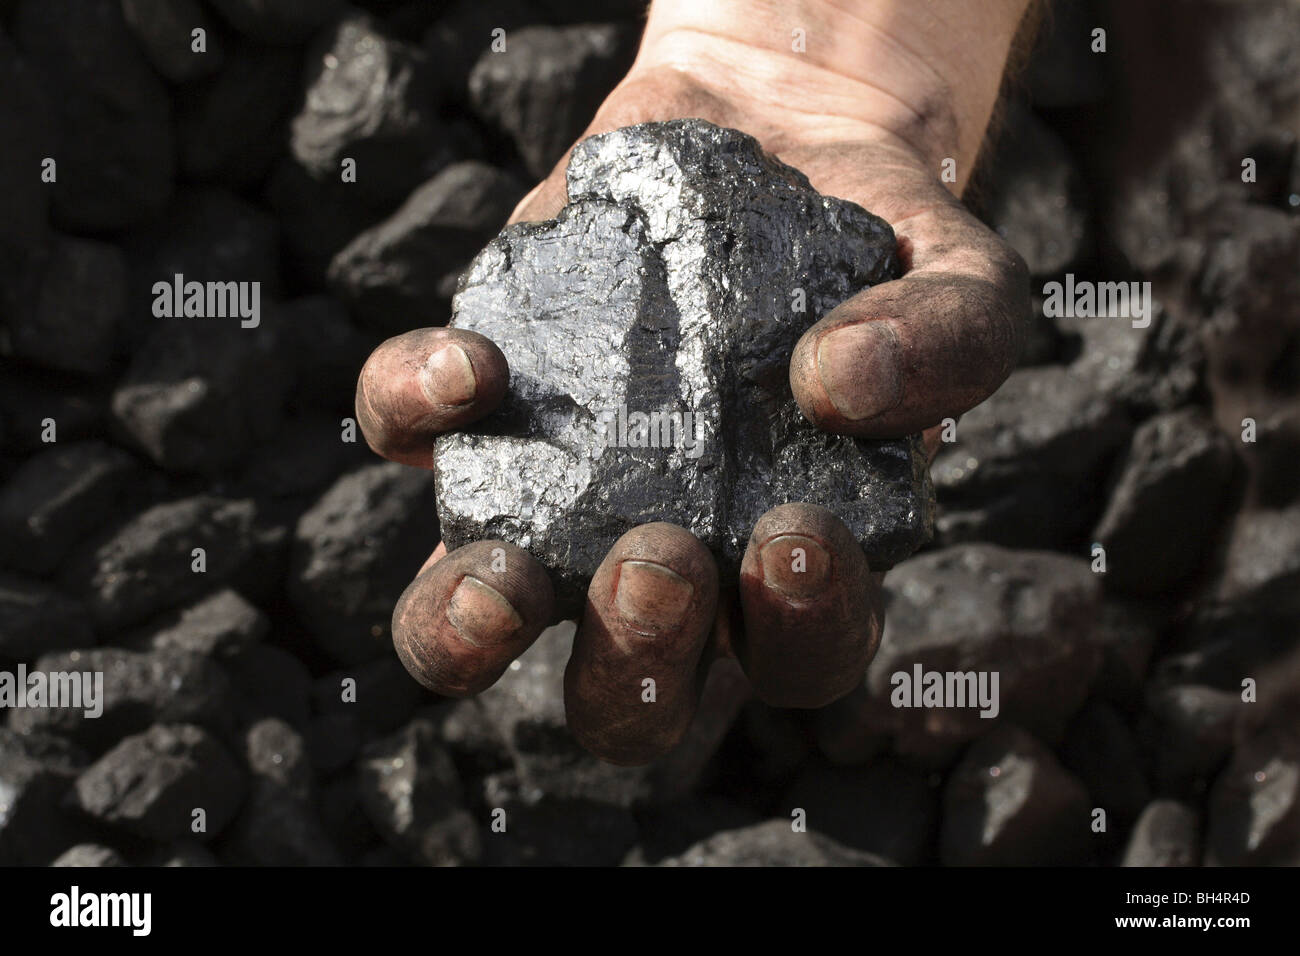 Dirty hand holding shiney anthracite coal. - Stock Image